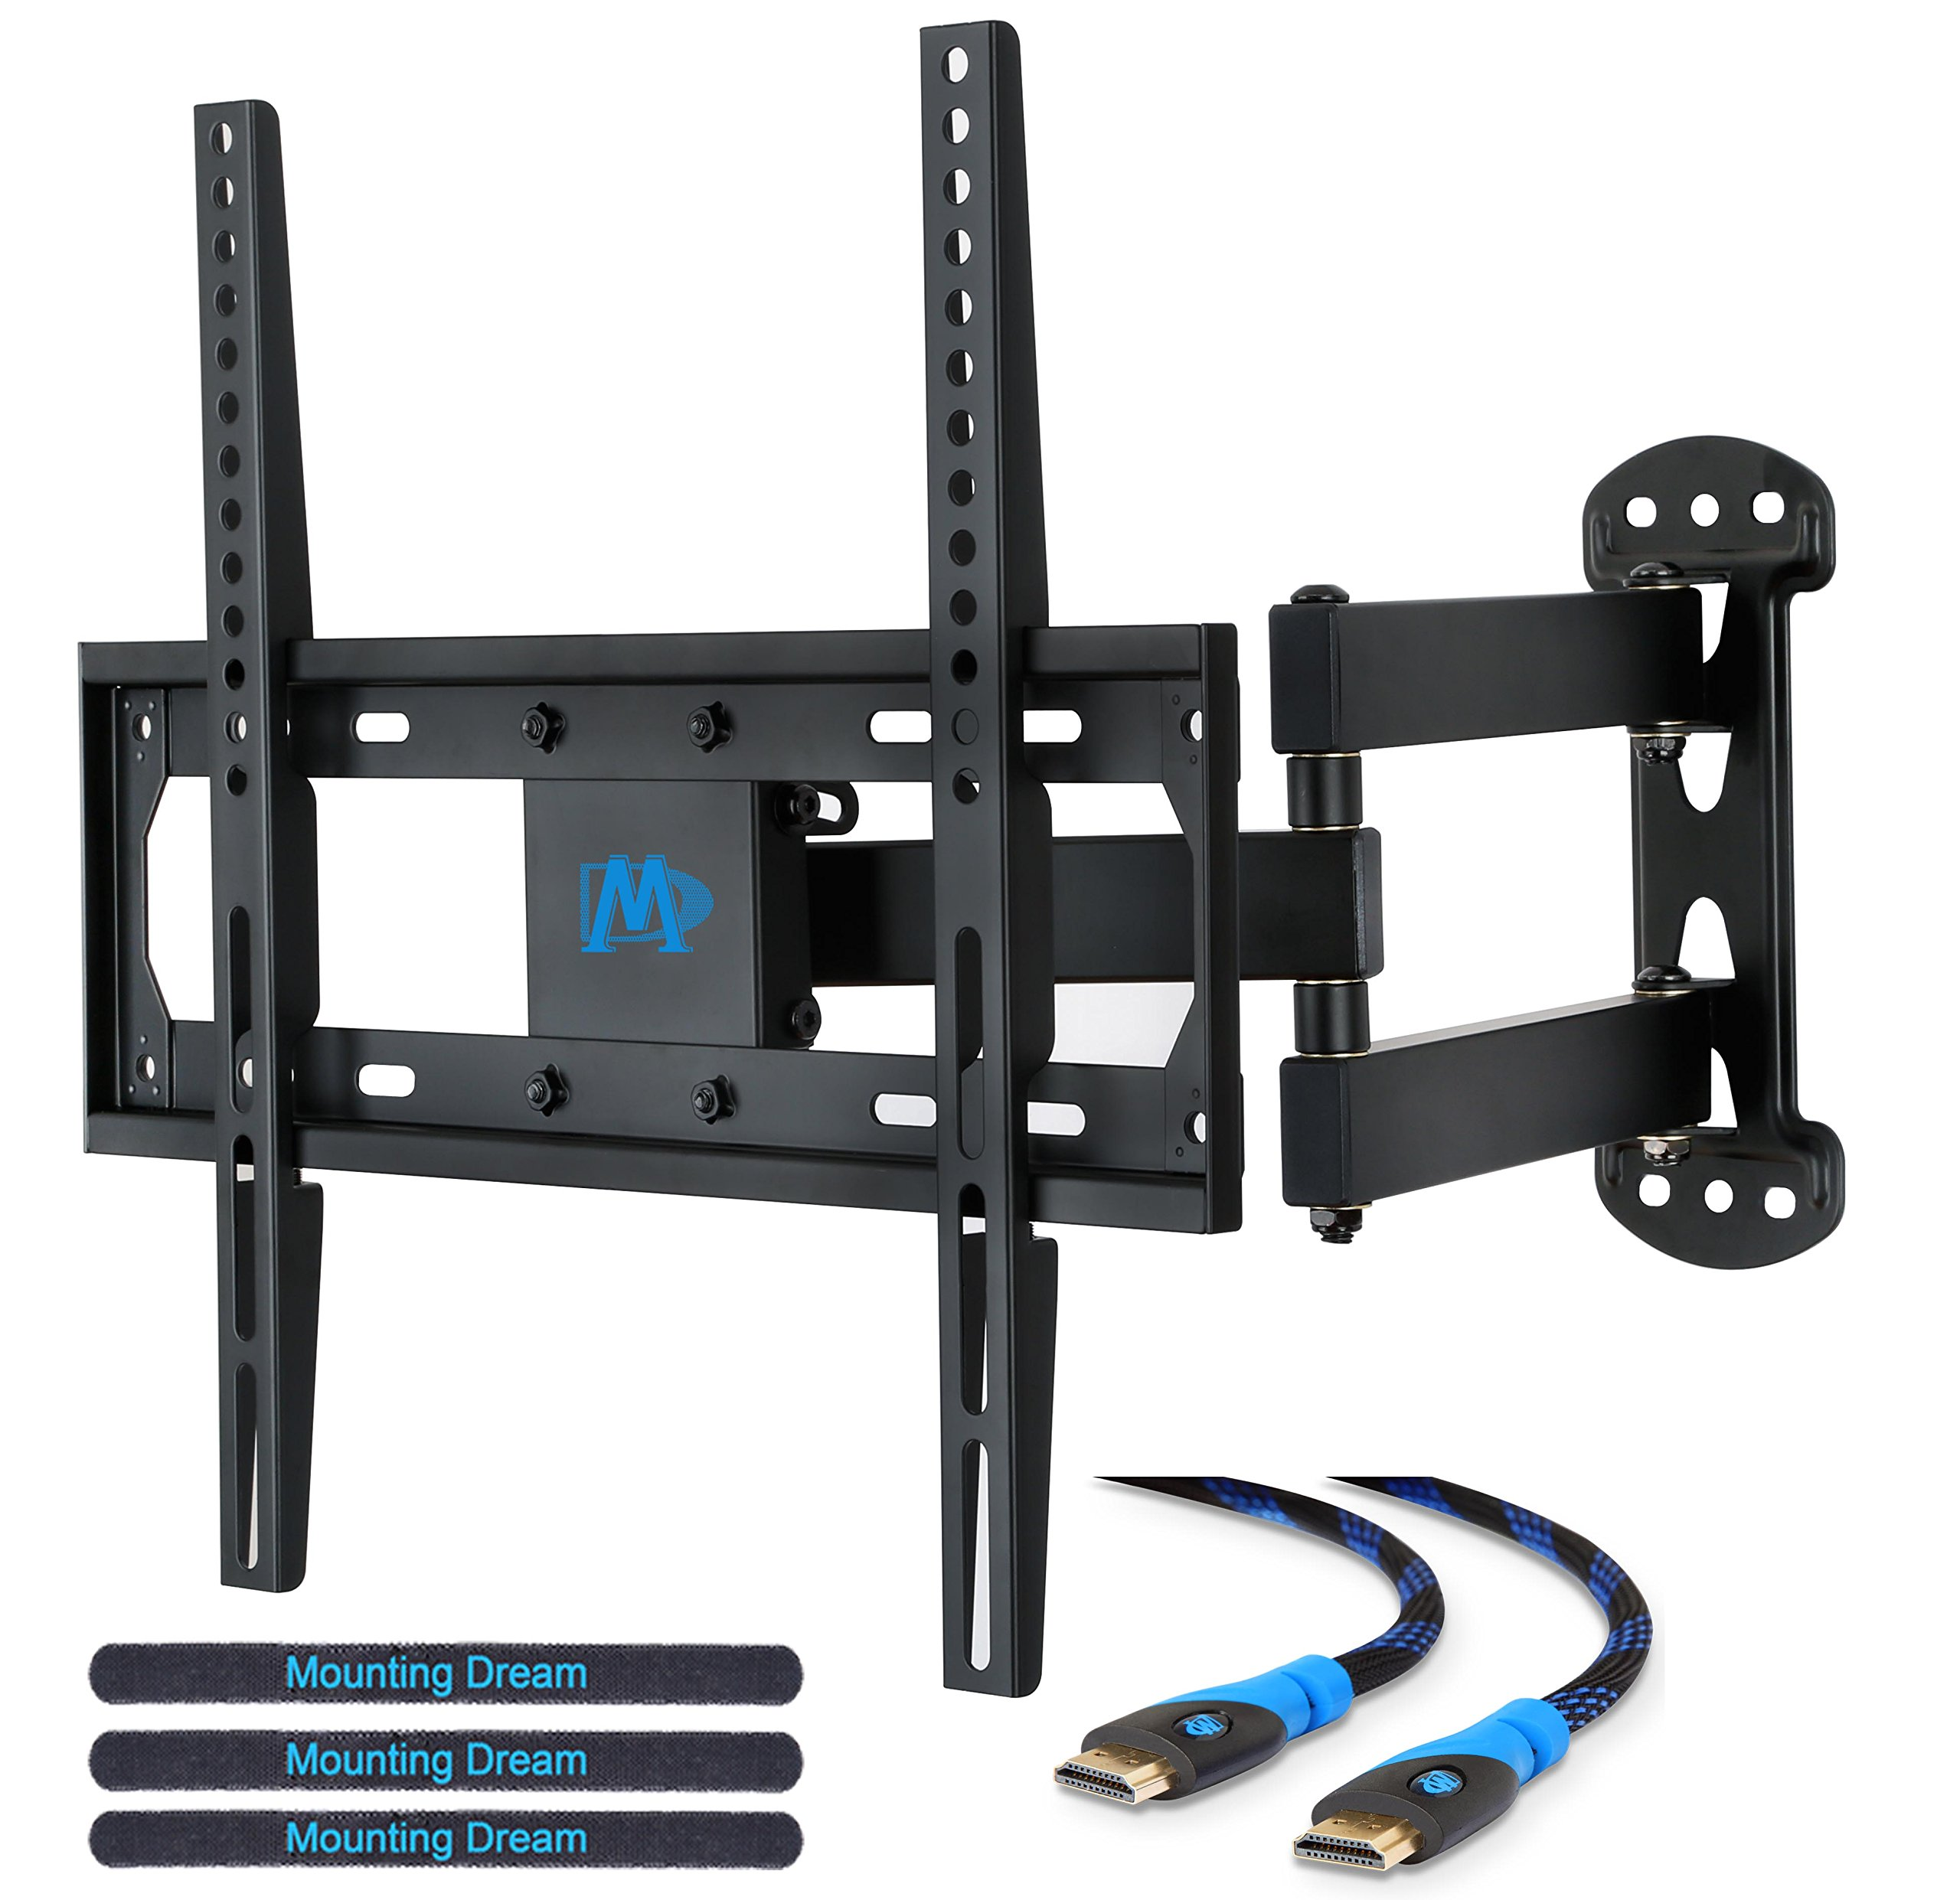 best rated in tv mounts  helpful customer reviews  amazoncom - mounting dream md tv wall mount bracket for most of  inch ledlcd oled flat screen tv with full motion swivel articulating arm up tovesa